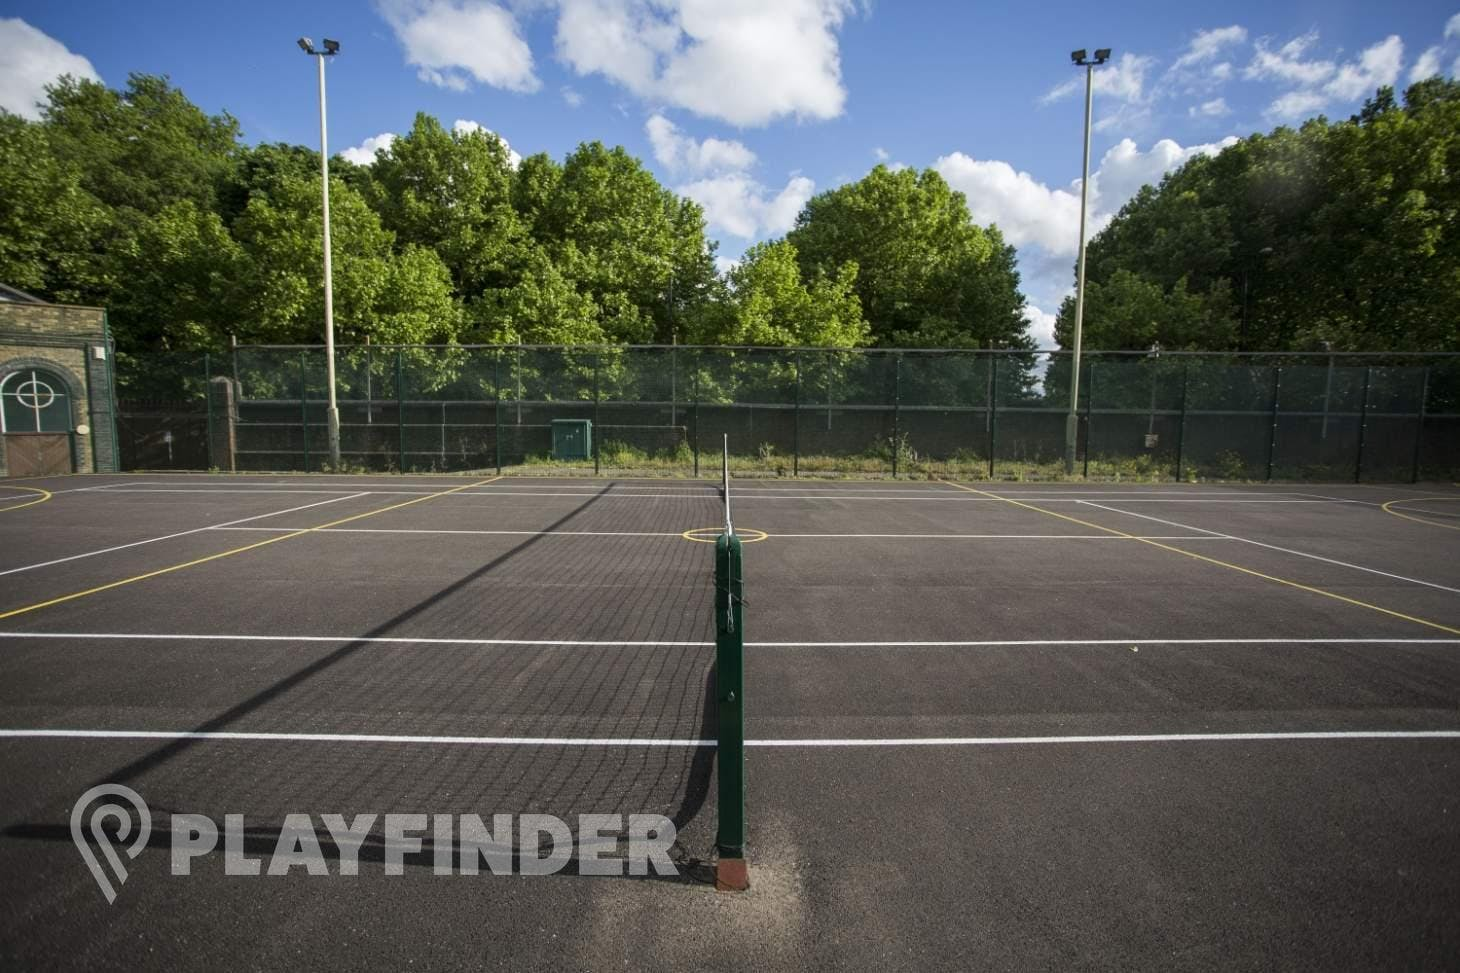 John Orwell Sports Centre Outdoor | Hard (macadam) tennis court